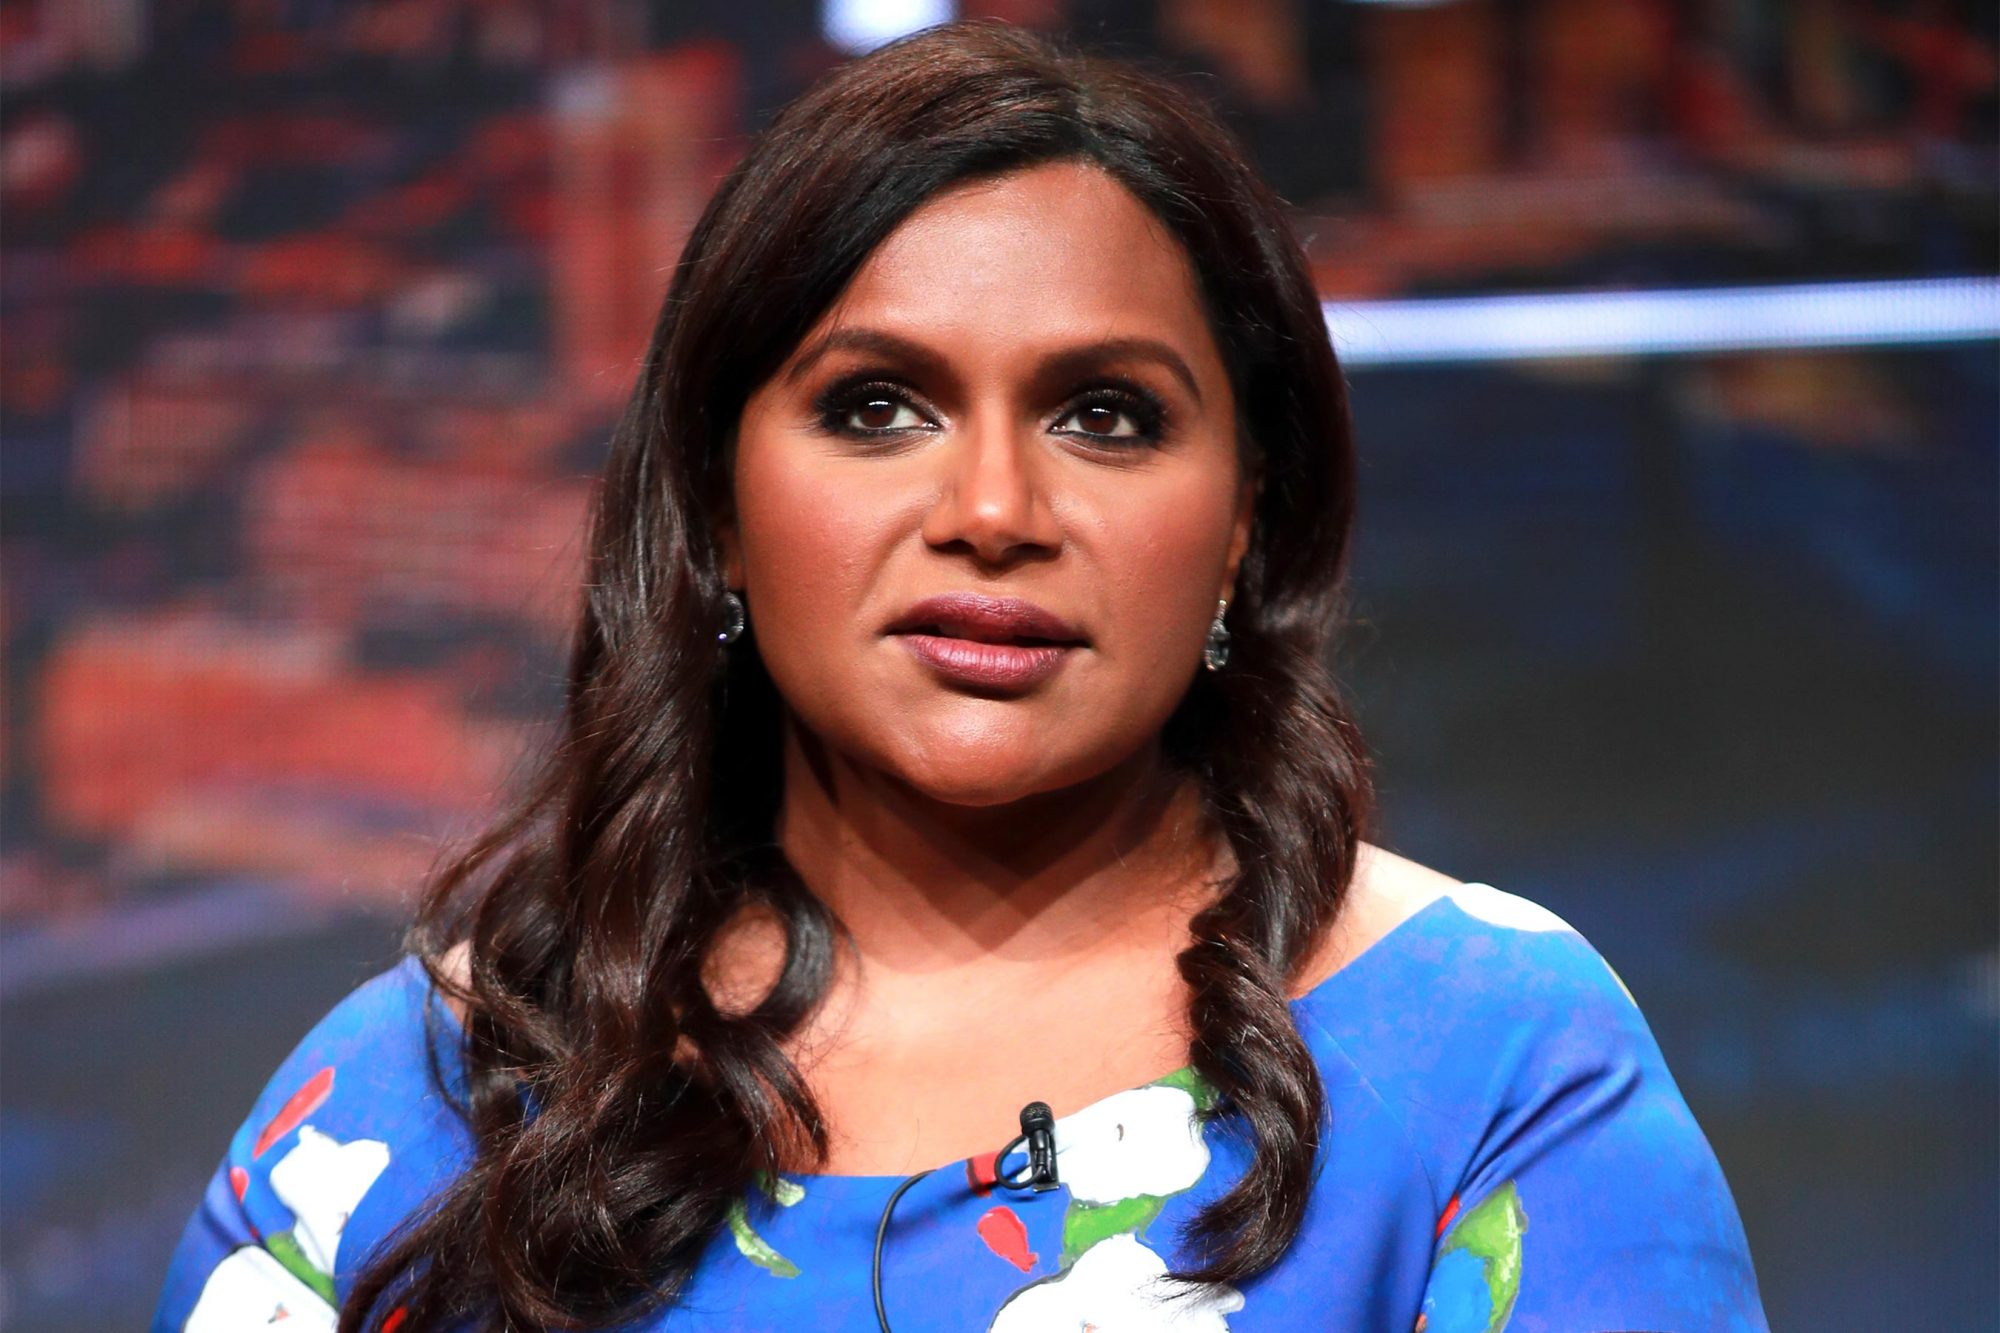 BEVERLY HILLS, CALIFORNIA - JULY 26: Mindy Kaling of 'Four Weddings and a Funeral' speaks onstage during the Hulu segment of the Summer 2019 Television Critics Association Press Tour at The Beverly Hilton Hotel on July 26, 2019 in Beverly Hills, California. (Photo by Rich Fury/Getty Images)